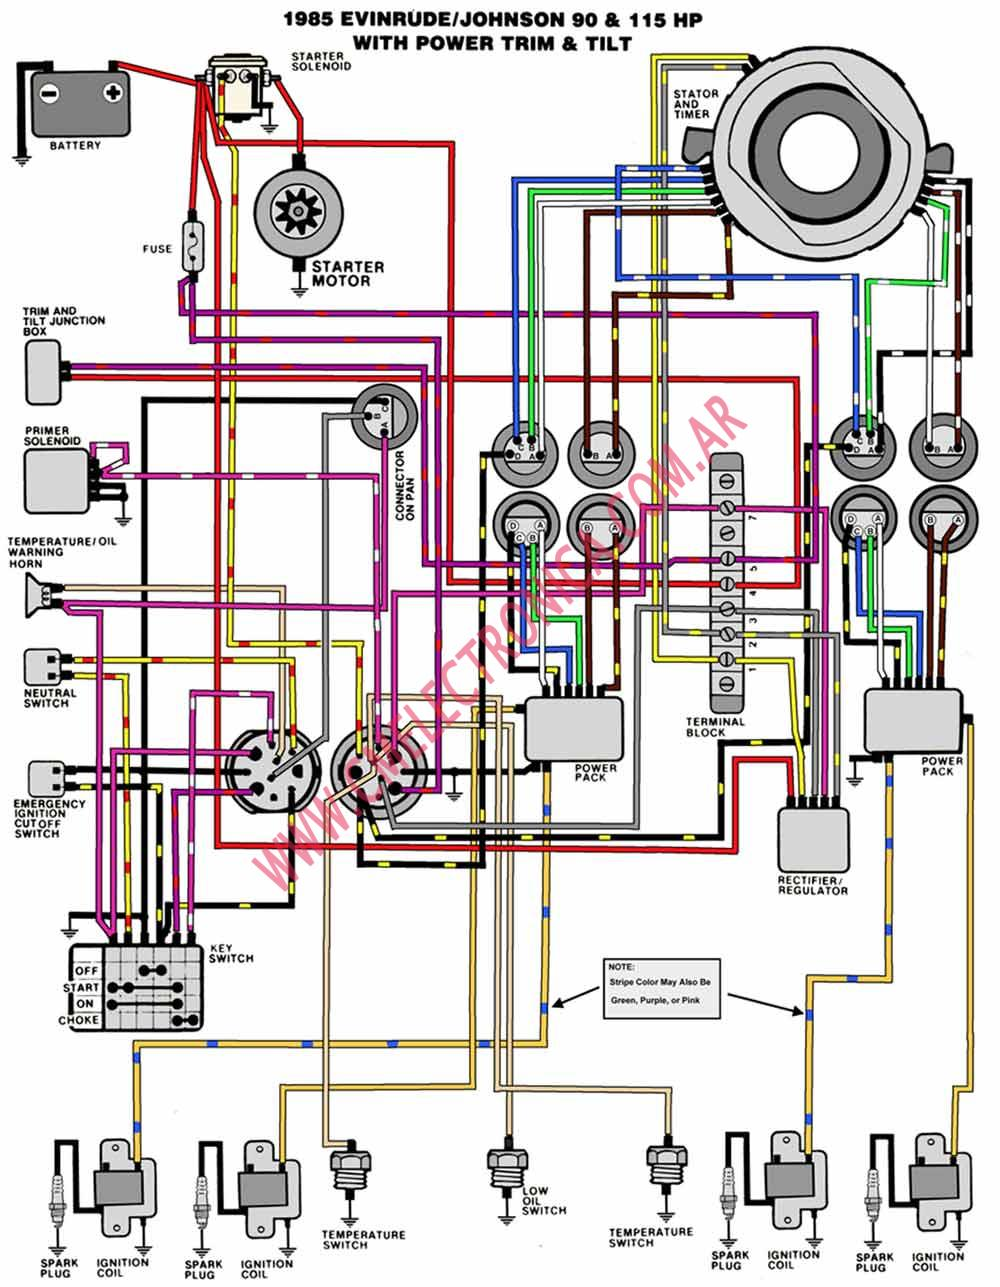 evinrude_johnson 1985_90_115 tnt?resize\\\=665%2c856 mercury  mercury  optimax wiring diagram